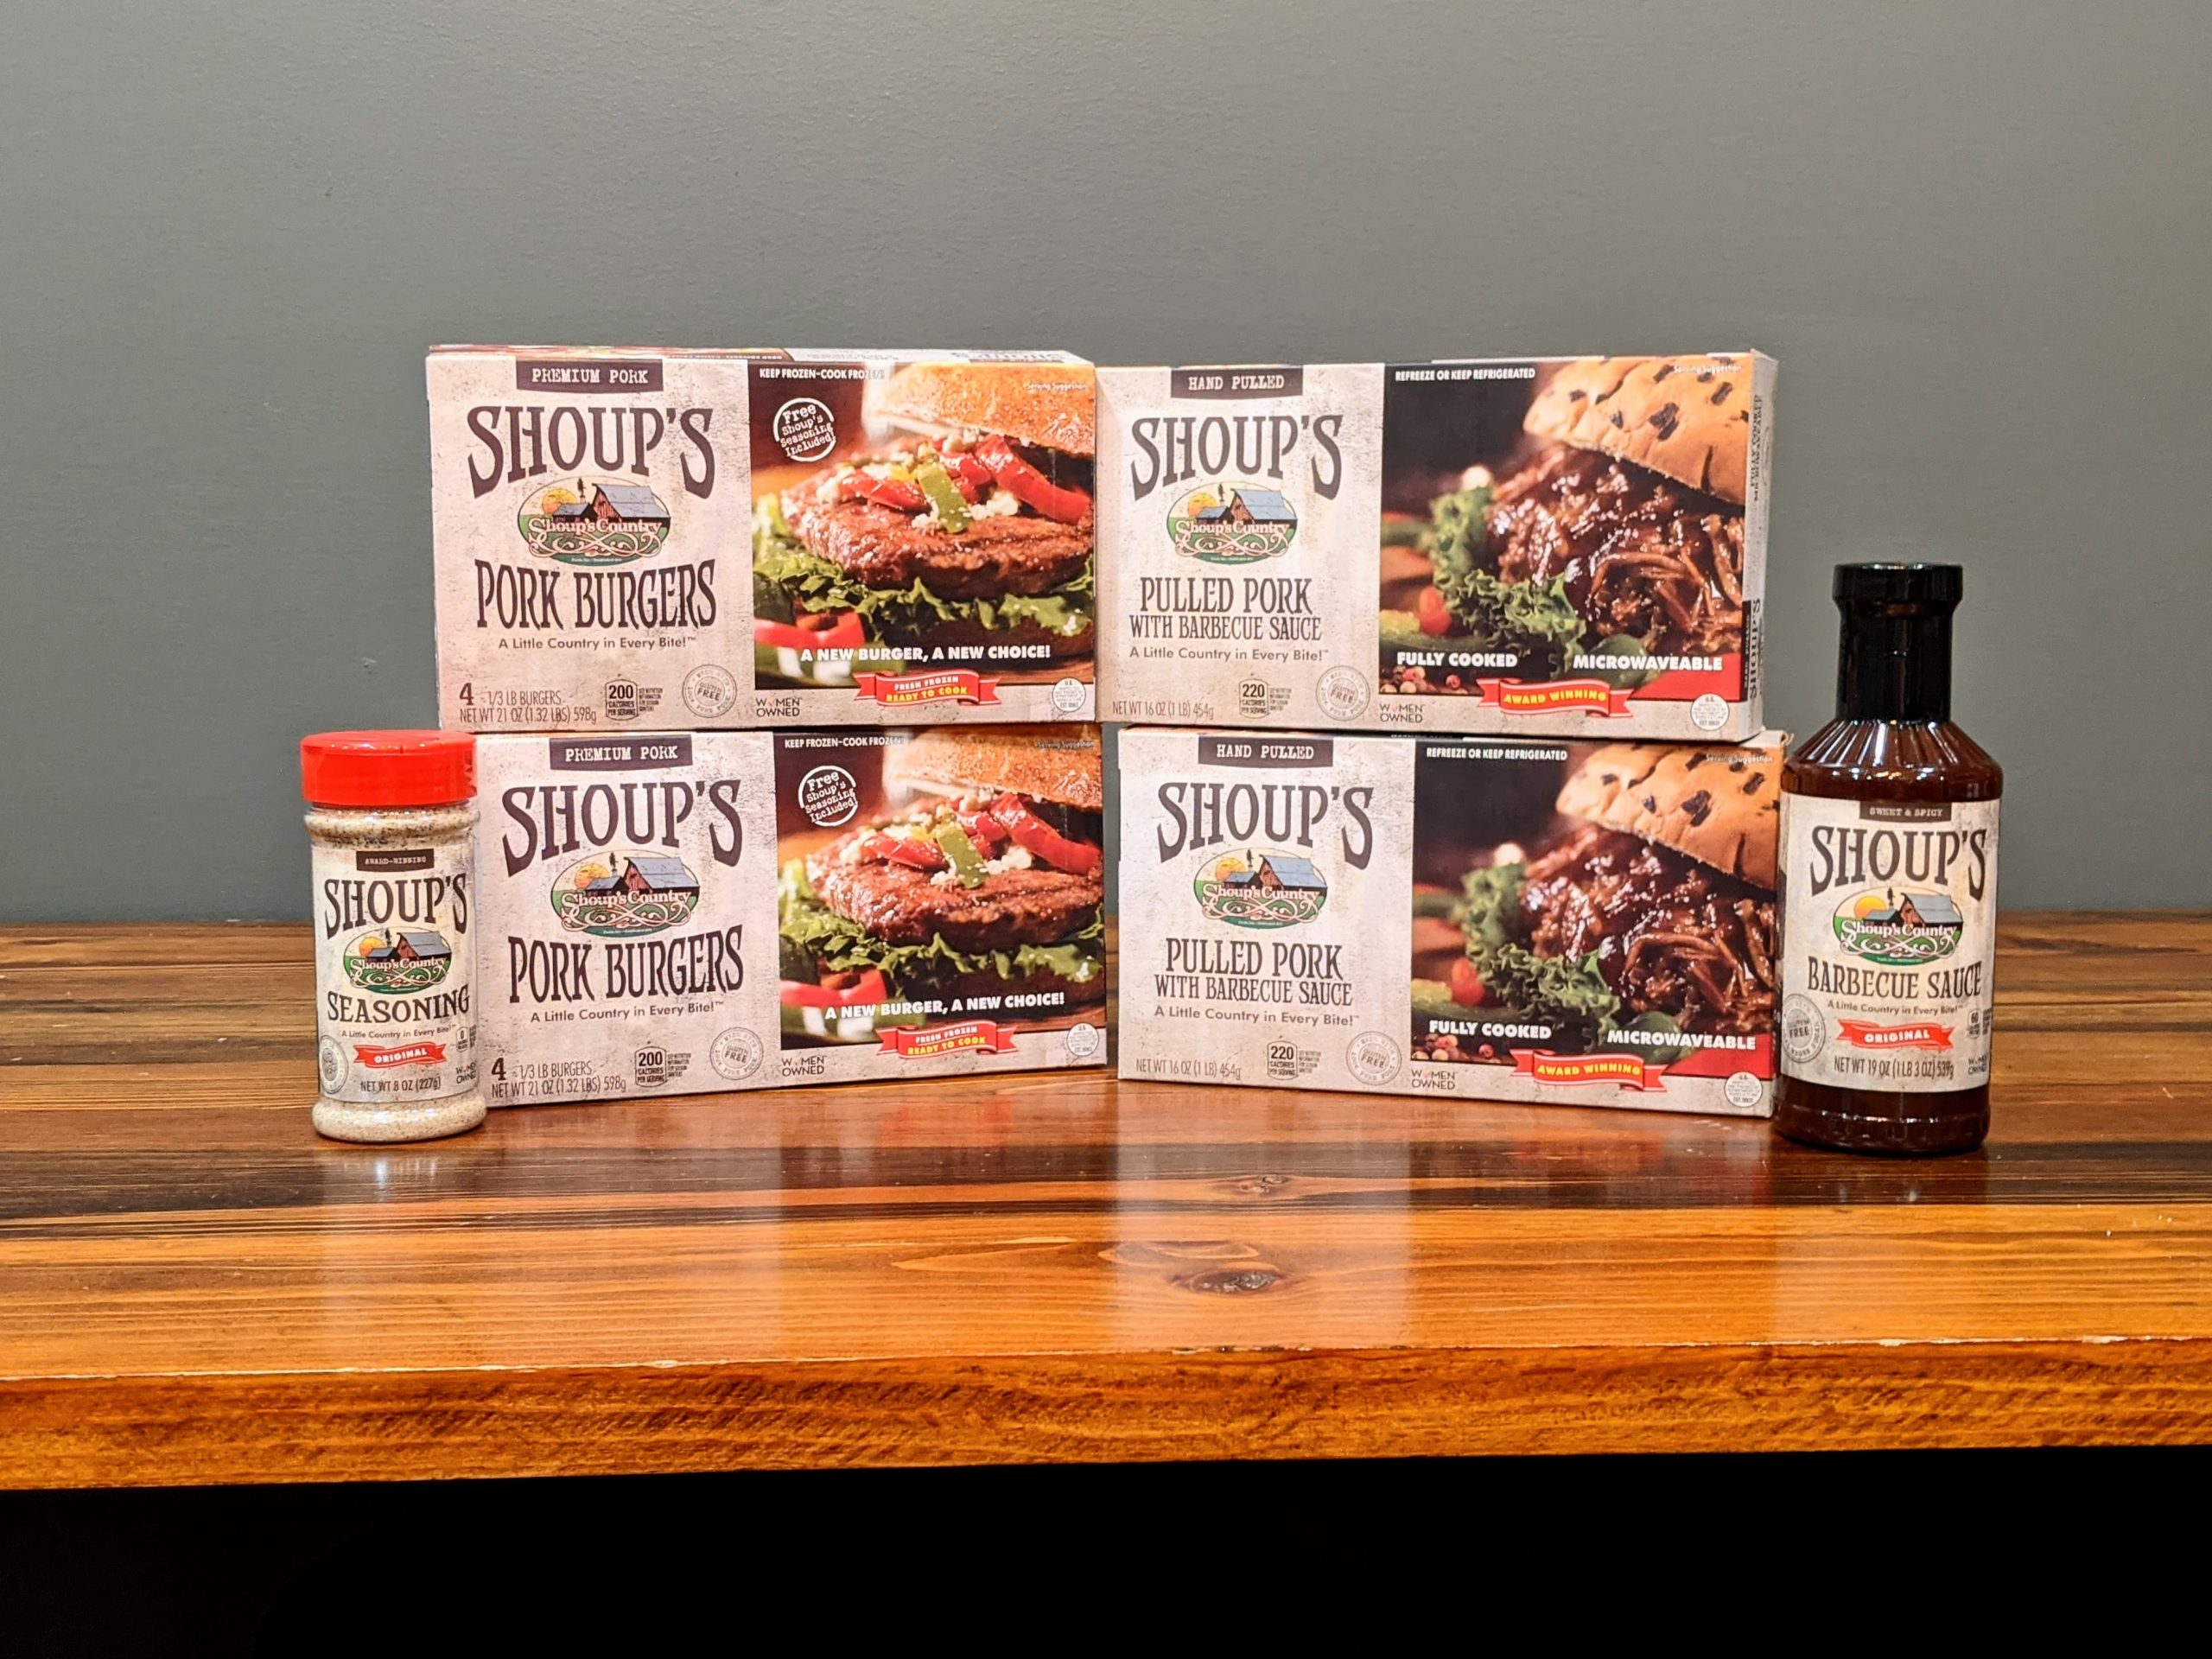 Shoup's Special Meat Combo with Sauce and Seasoning